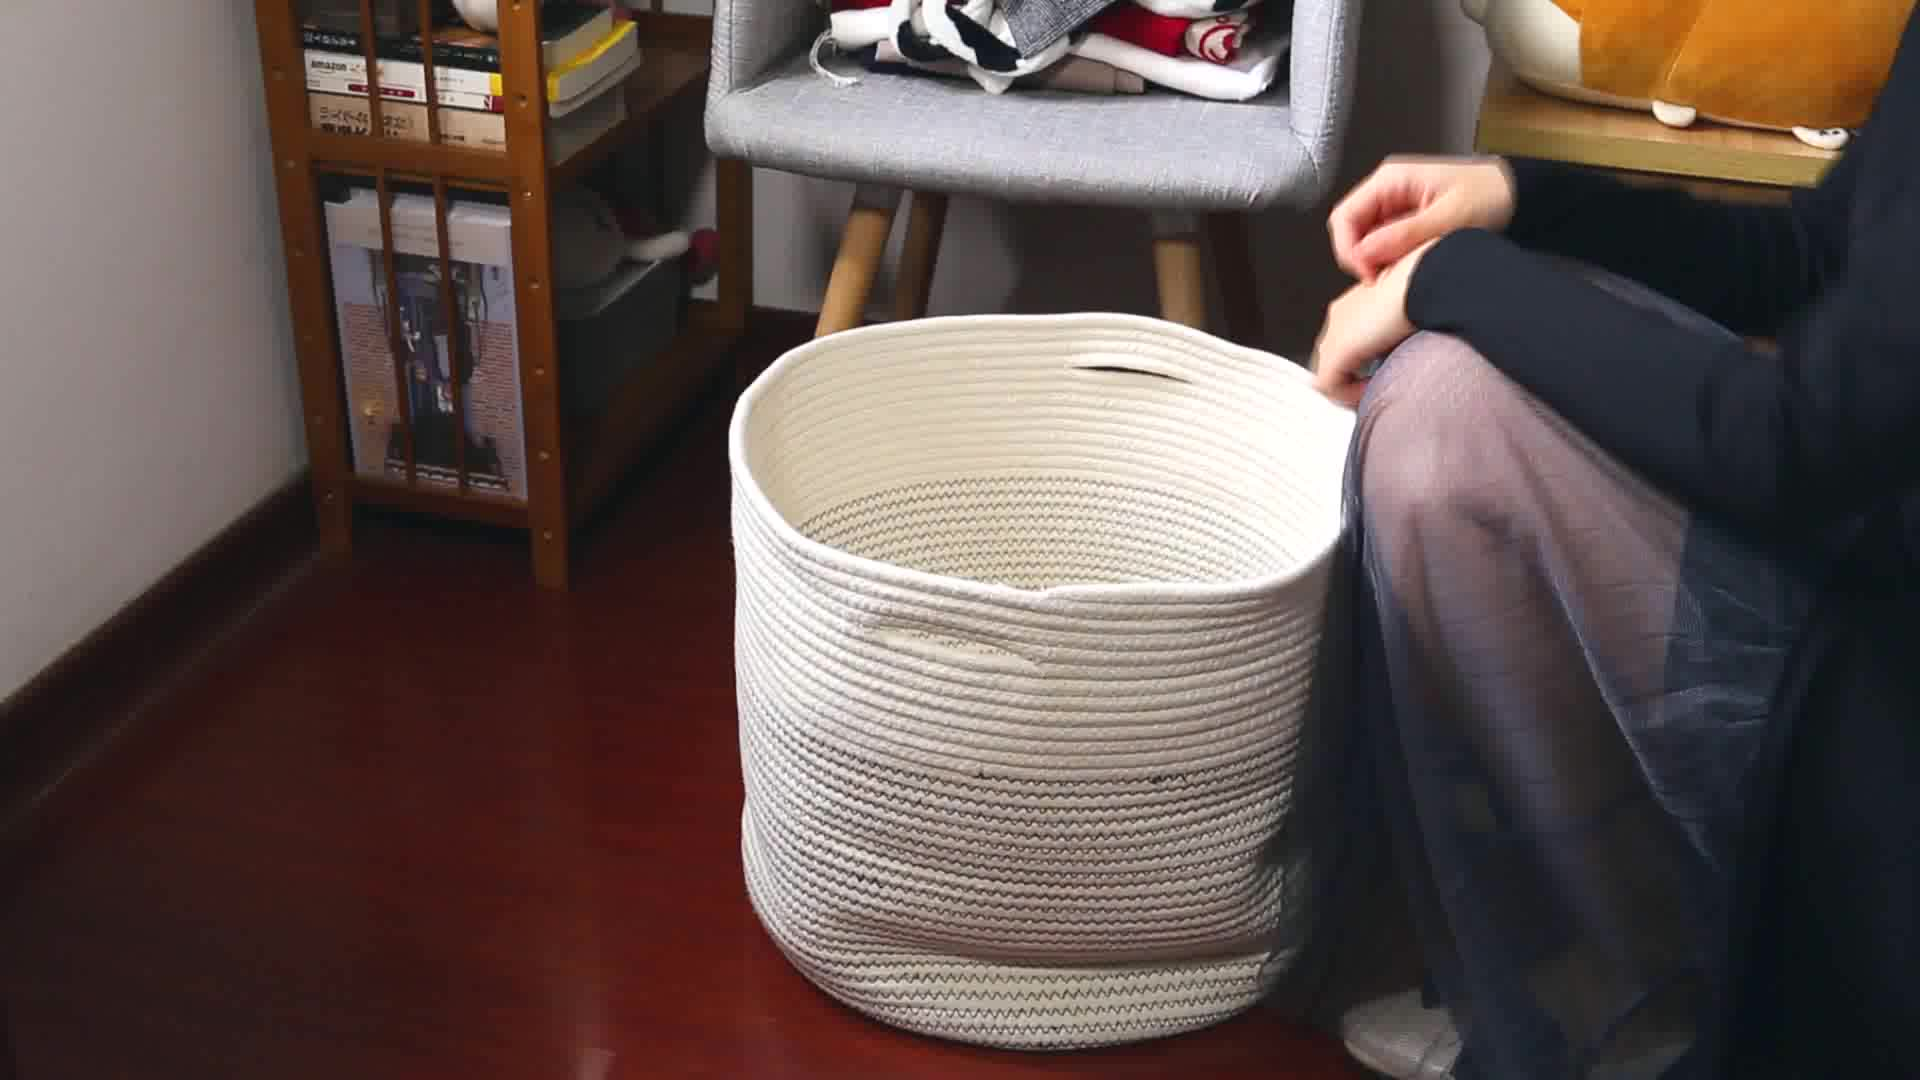 QJMAX Extra Large Woven Cotton Rope Storage Basket With Pom-Poms For Living Room